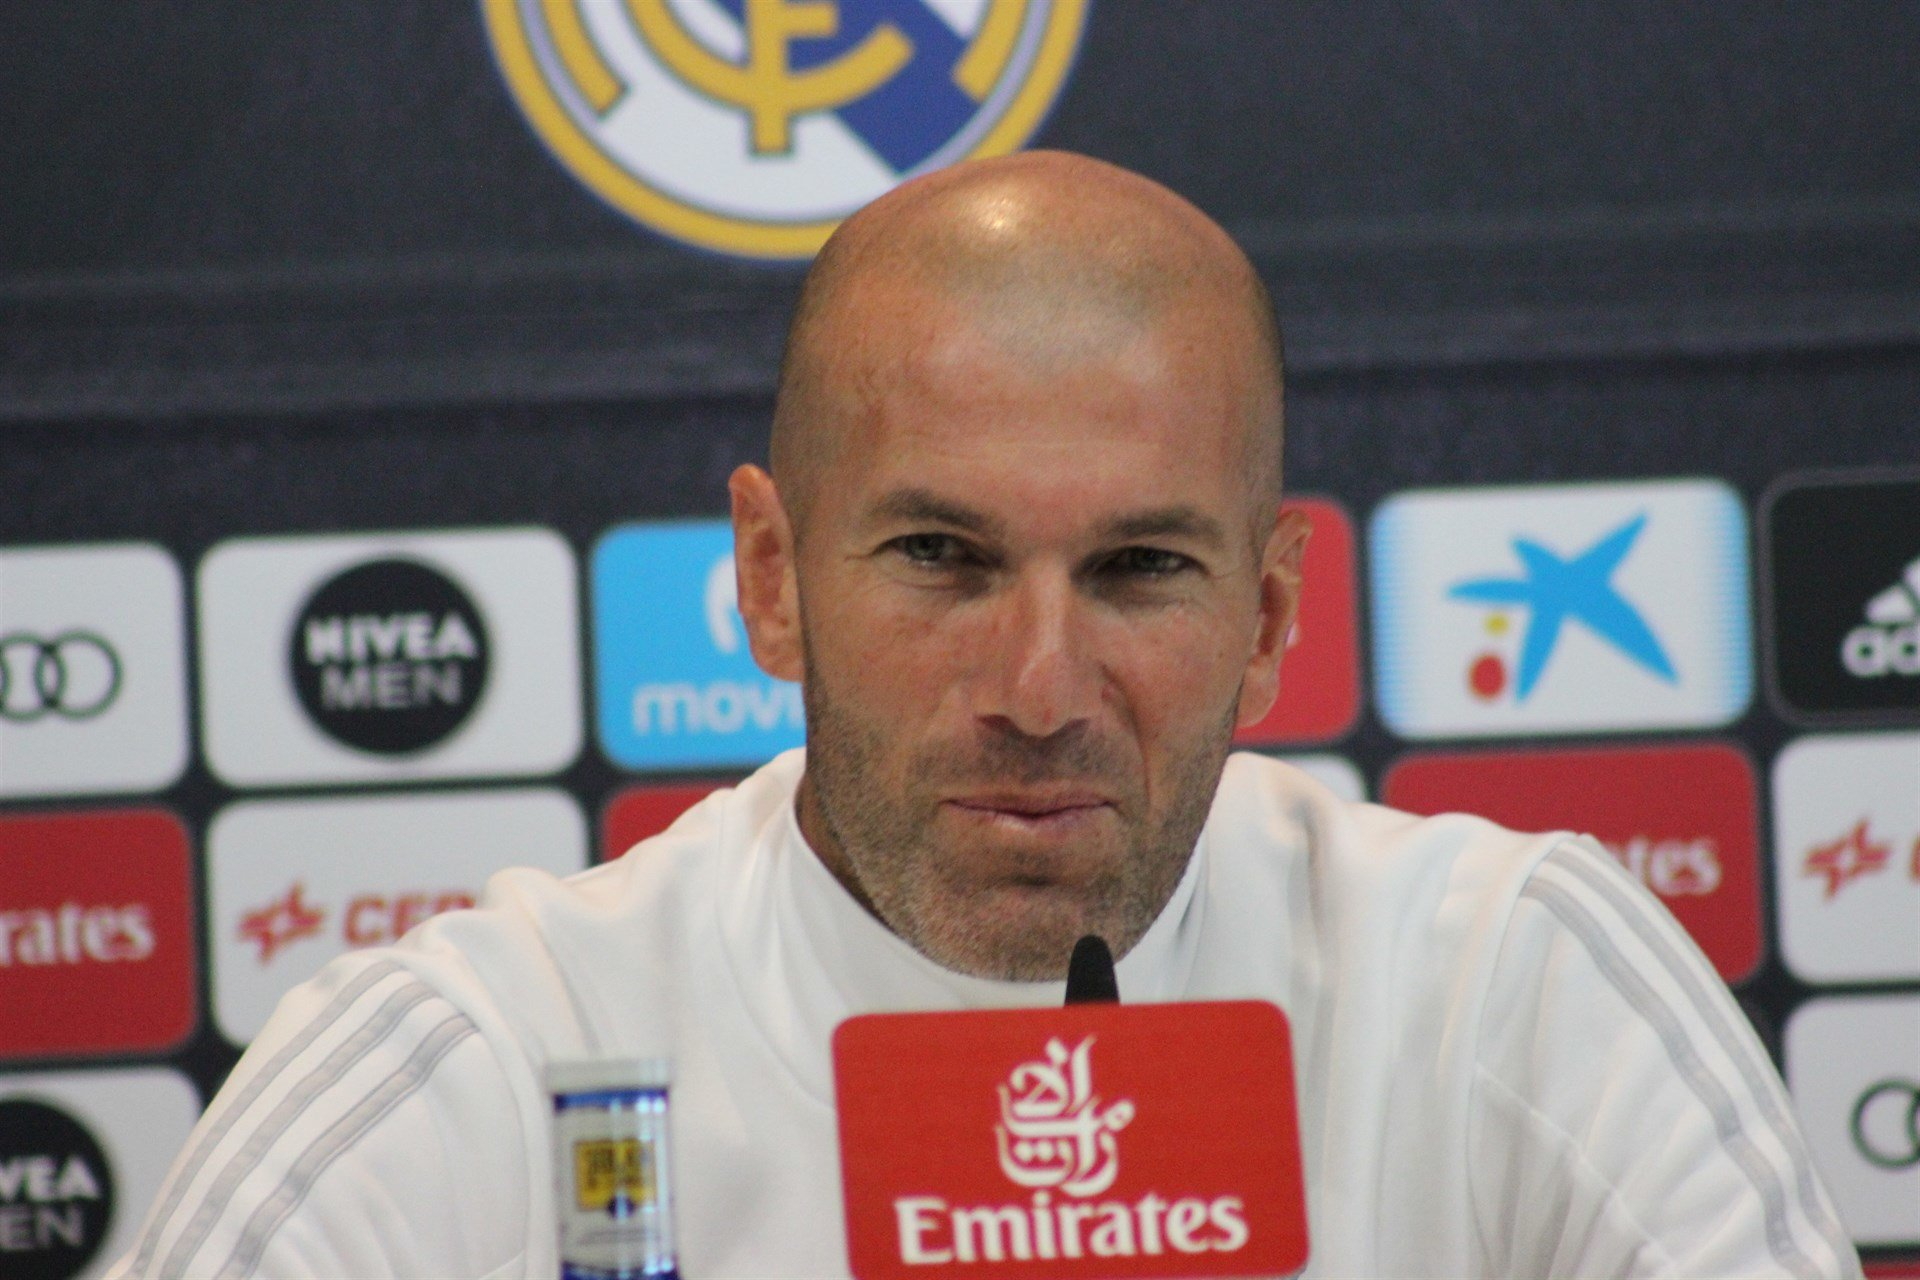 El entrenador del Real Madrid, Zinedine Zidane. /E.PRESS